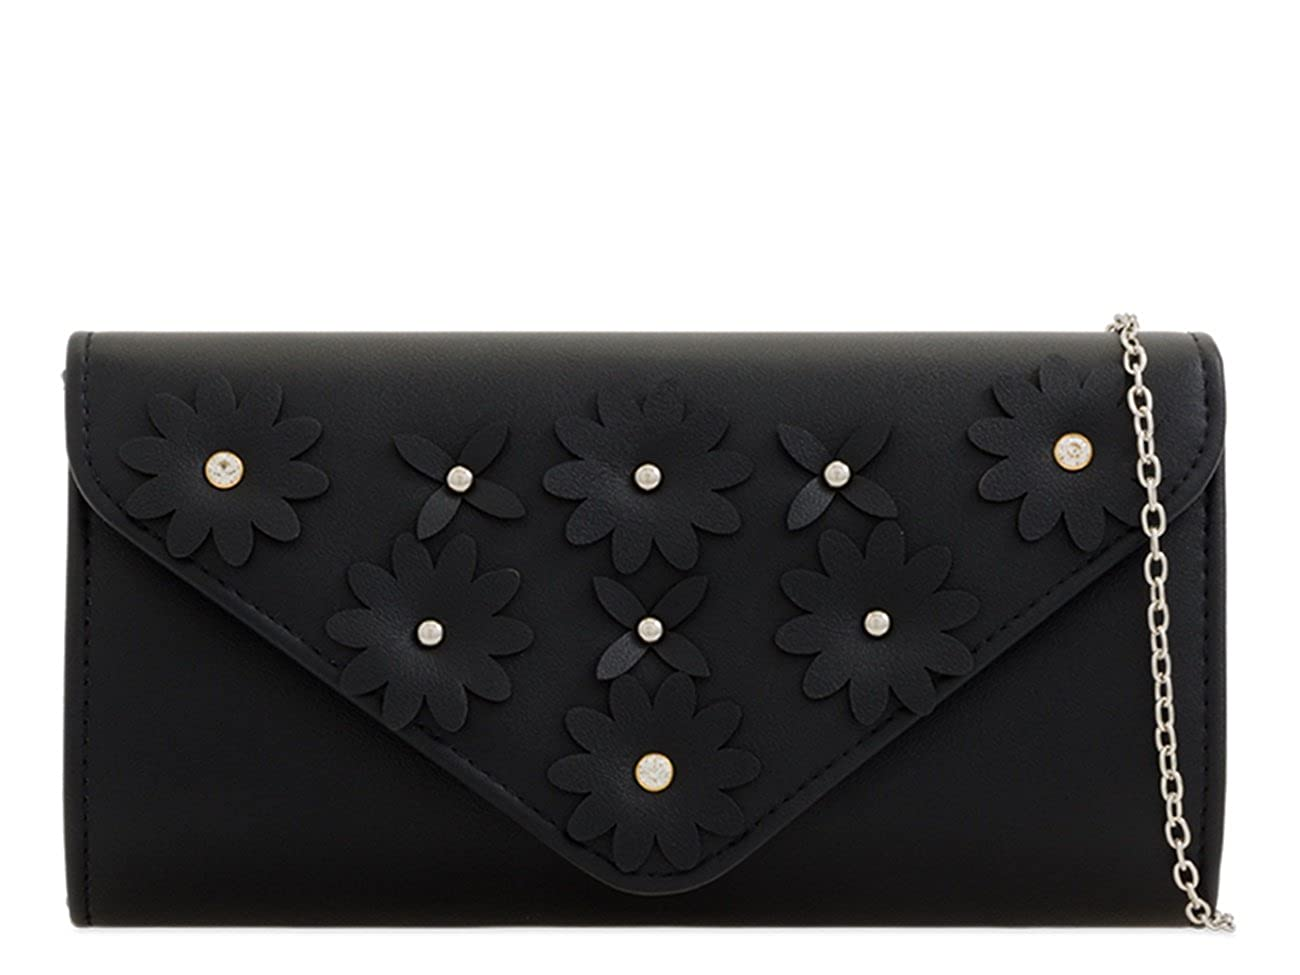 LeahWard Women/'s Faux Suede Flap Clutch Bag Wedding Night Out Handbag Evening